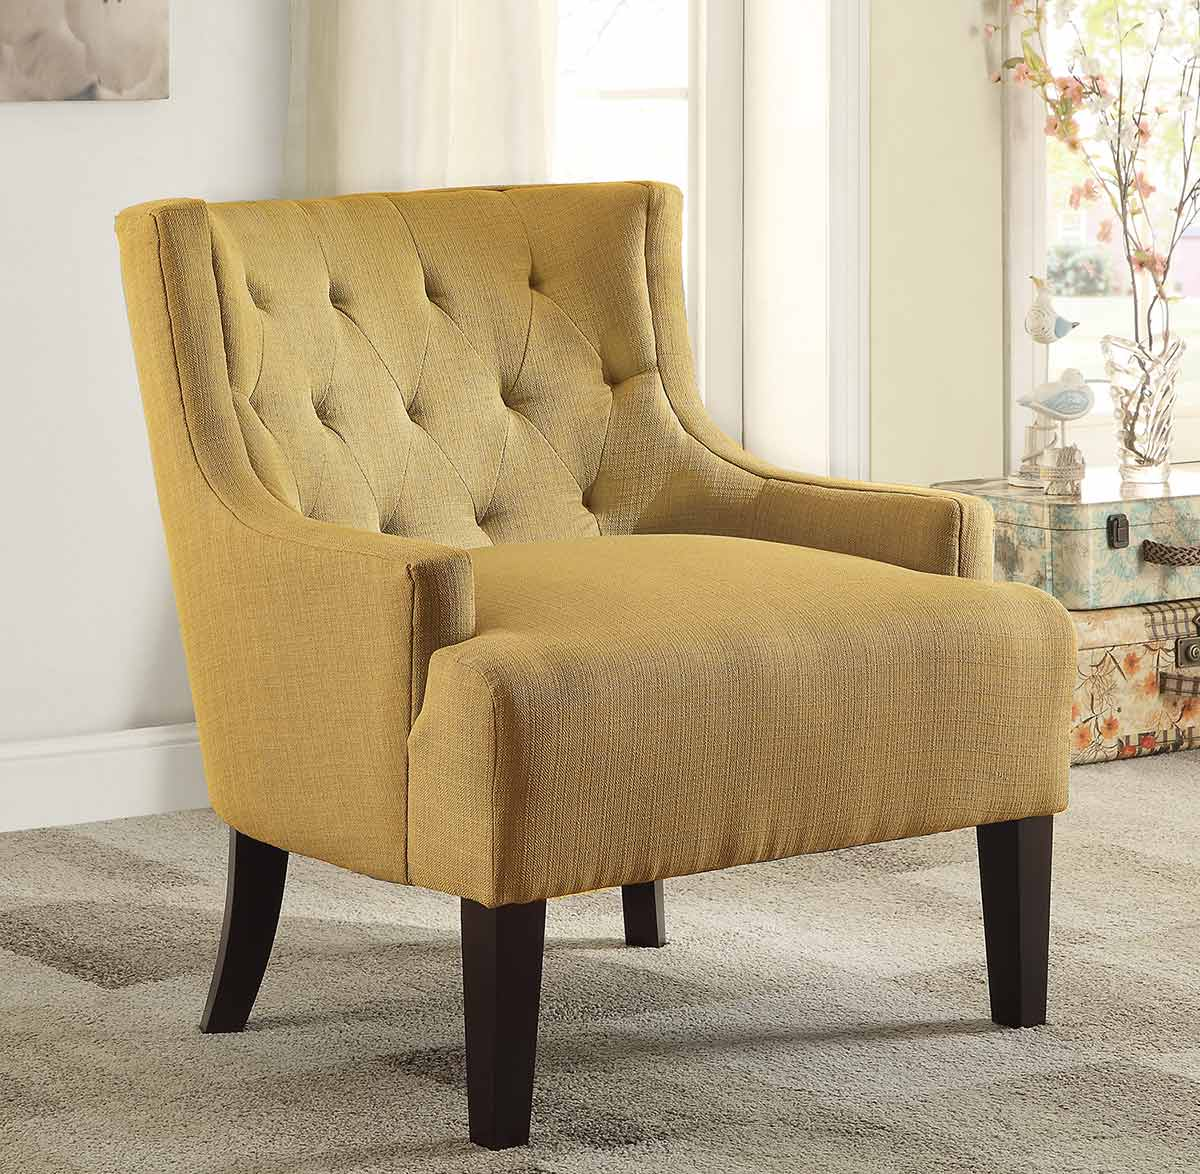 Homelegance Dulce Accent Chair - Mustard